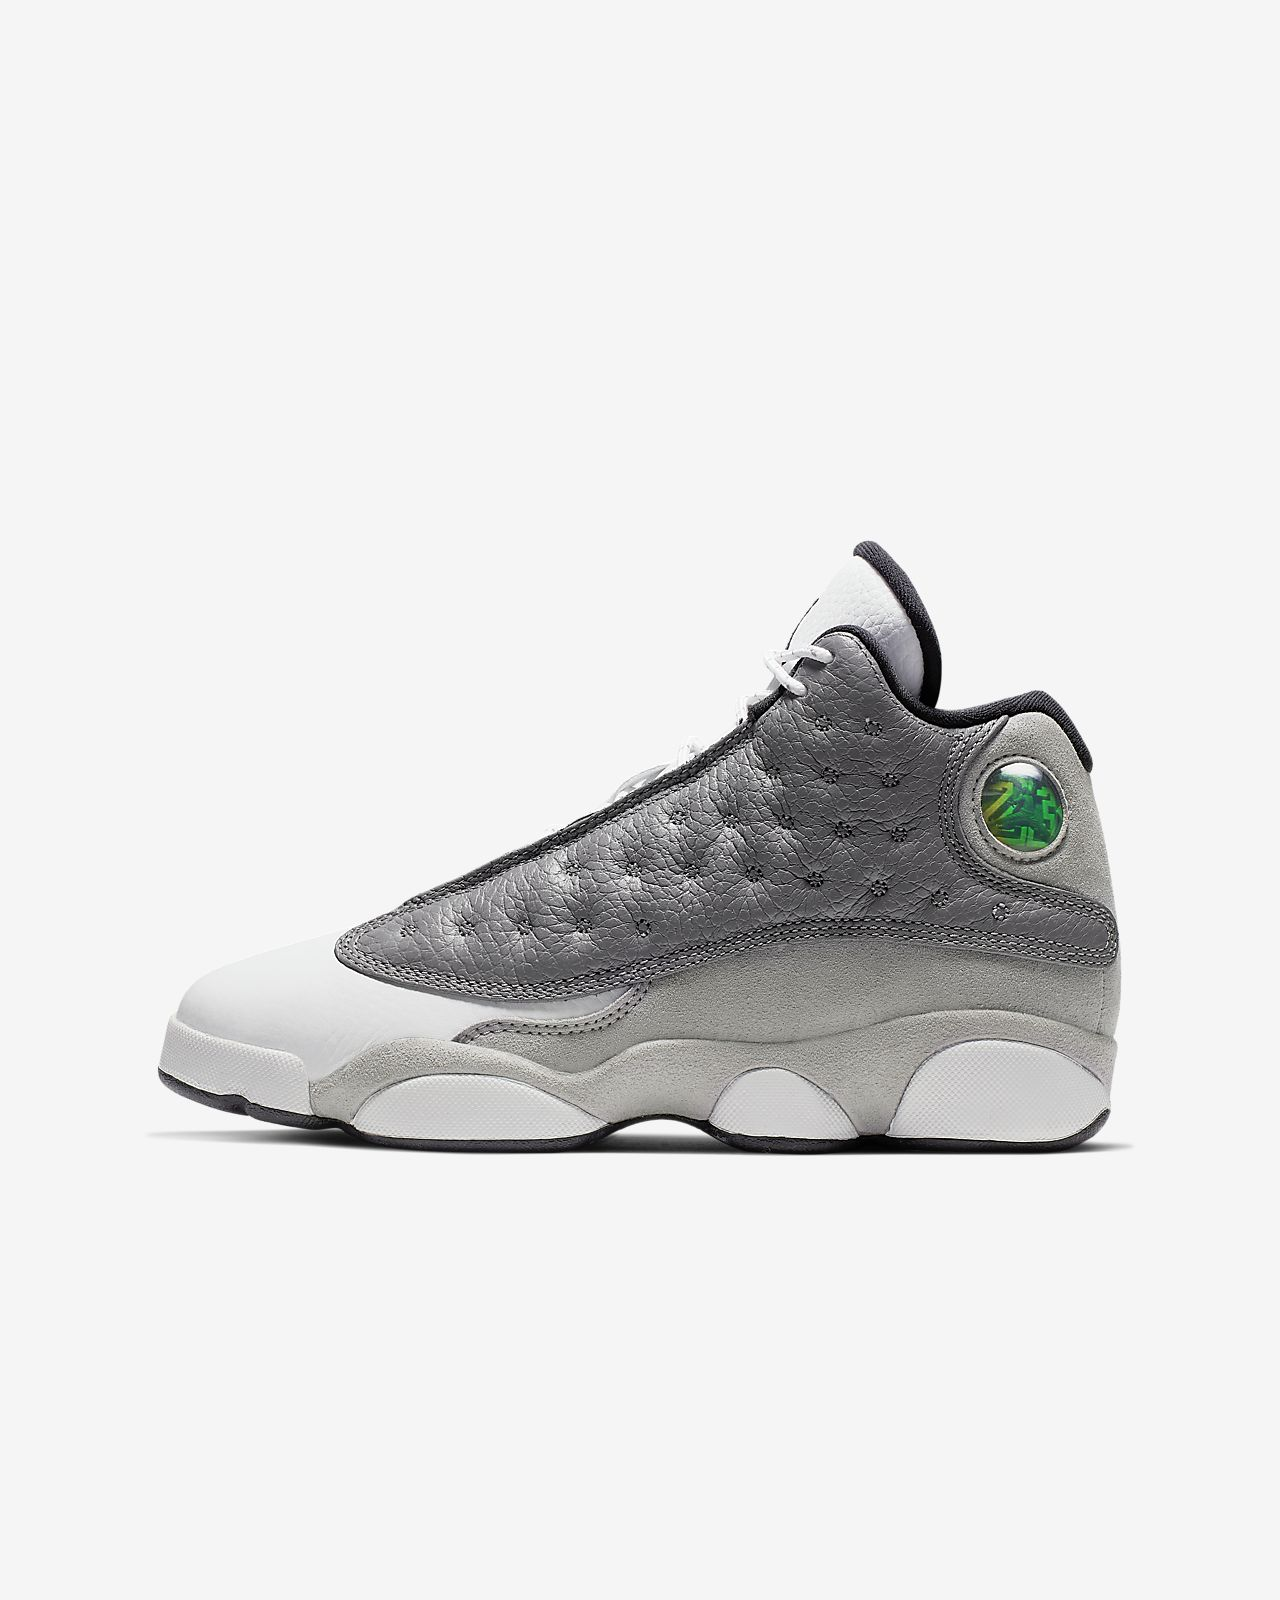 39b00eeb8af0c2 Air Jordan 13 Retro Big Kids  Shoe. Nike.com